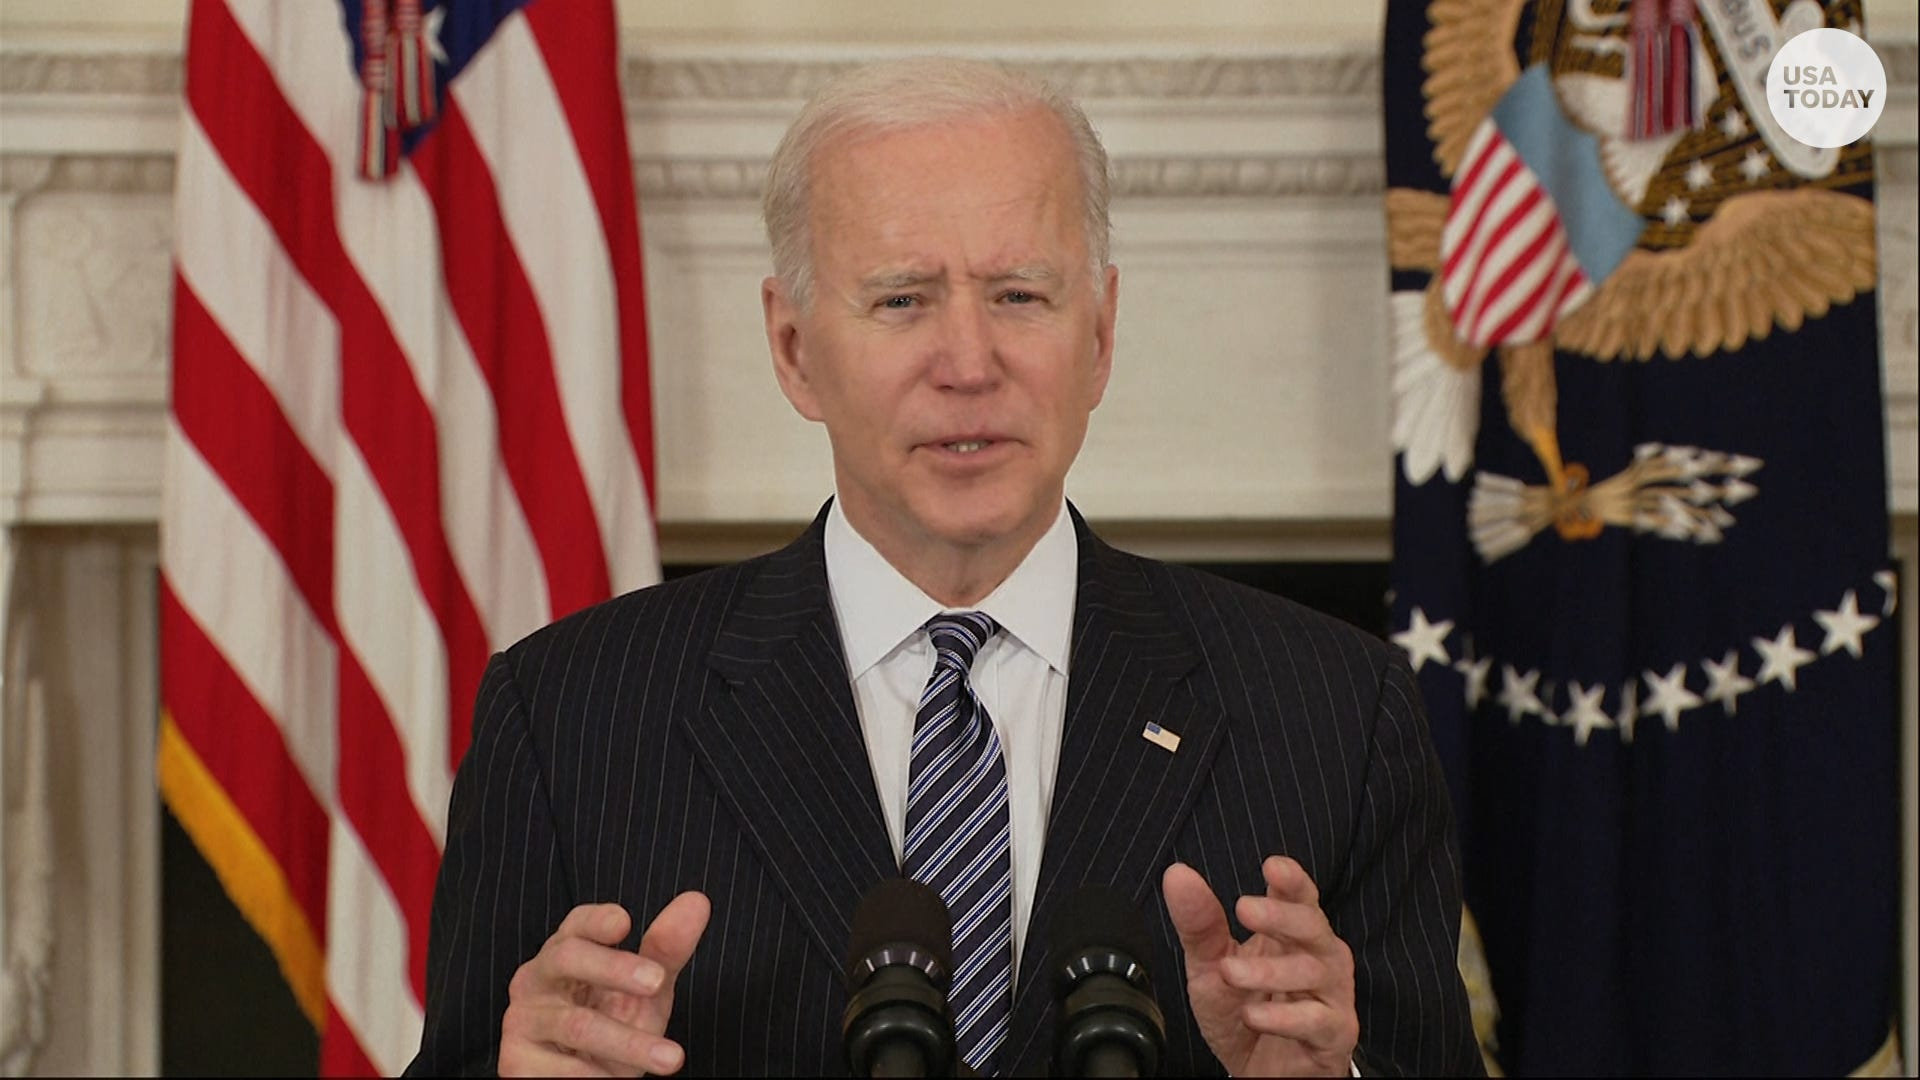 'We aren't at the finish line,' Biden says COVID is dangerous despite vaccine rollout